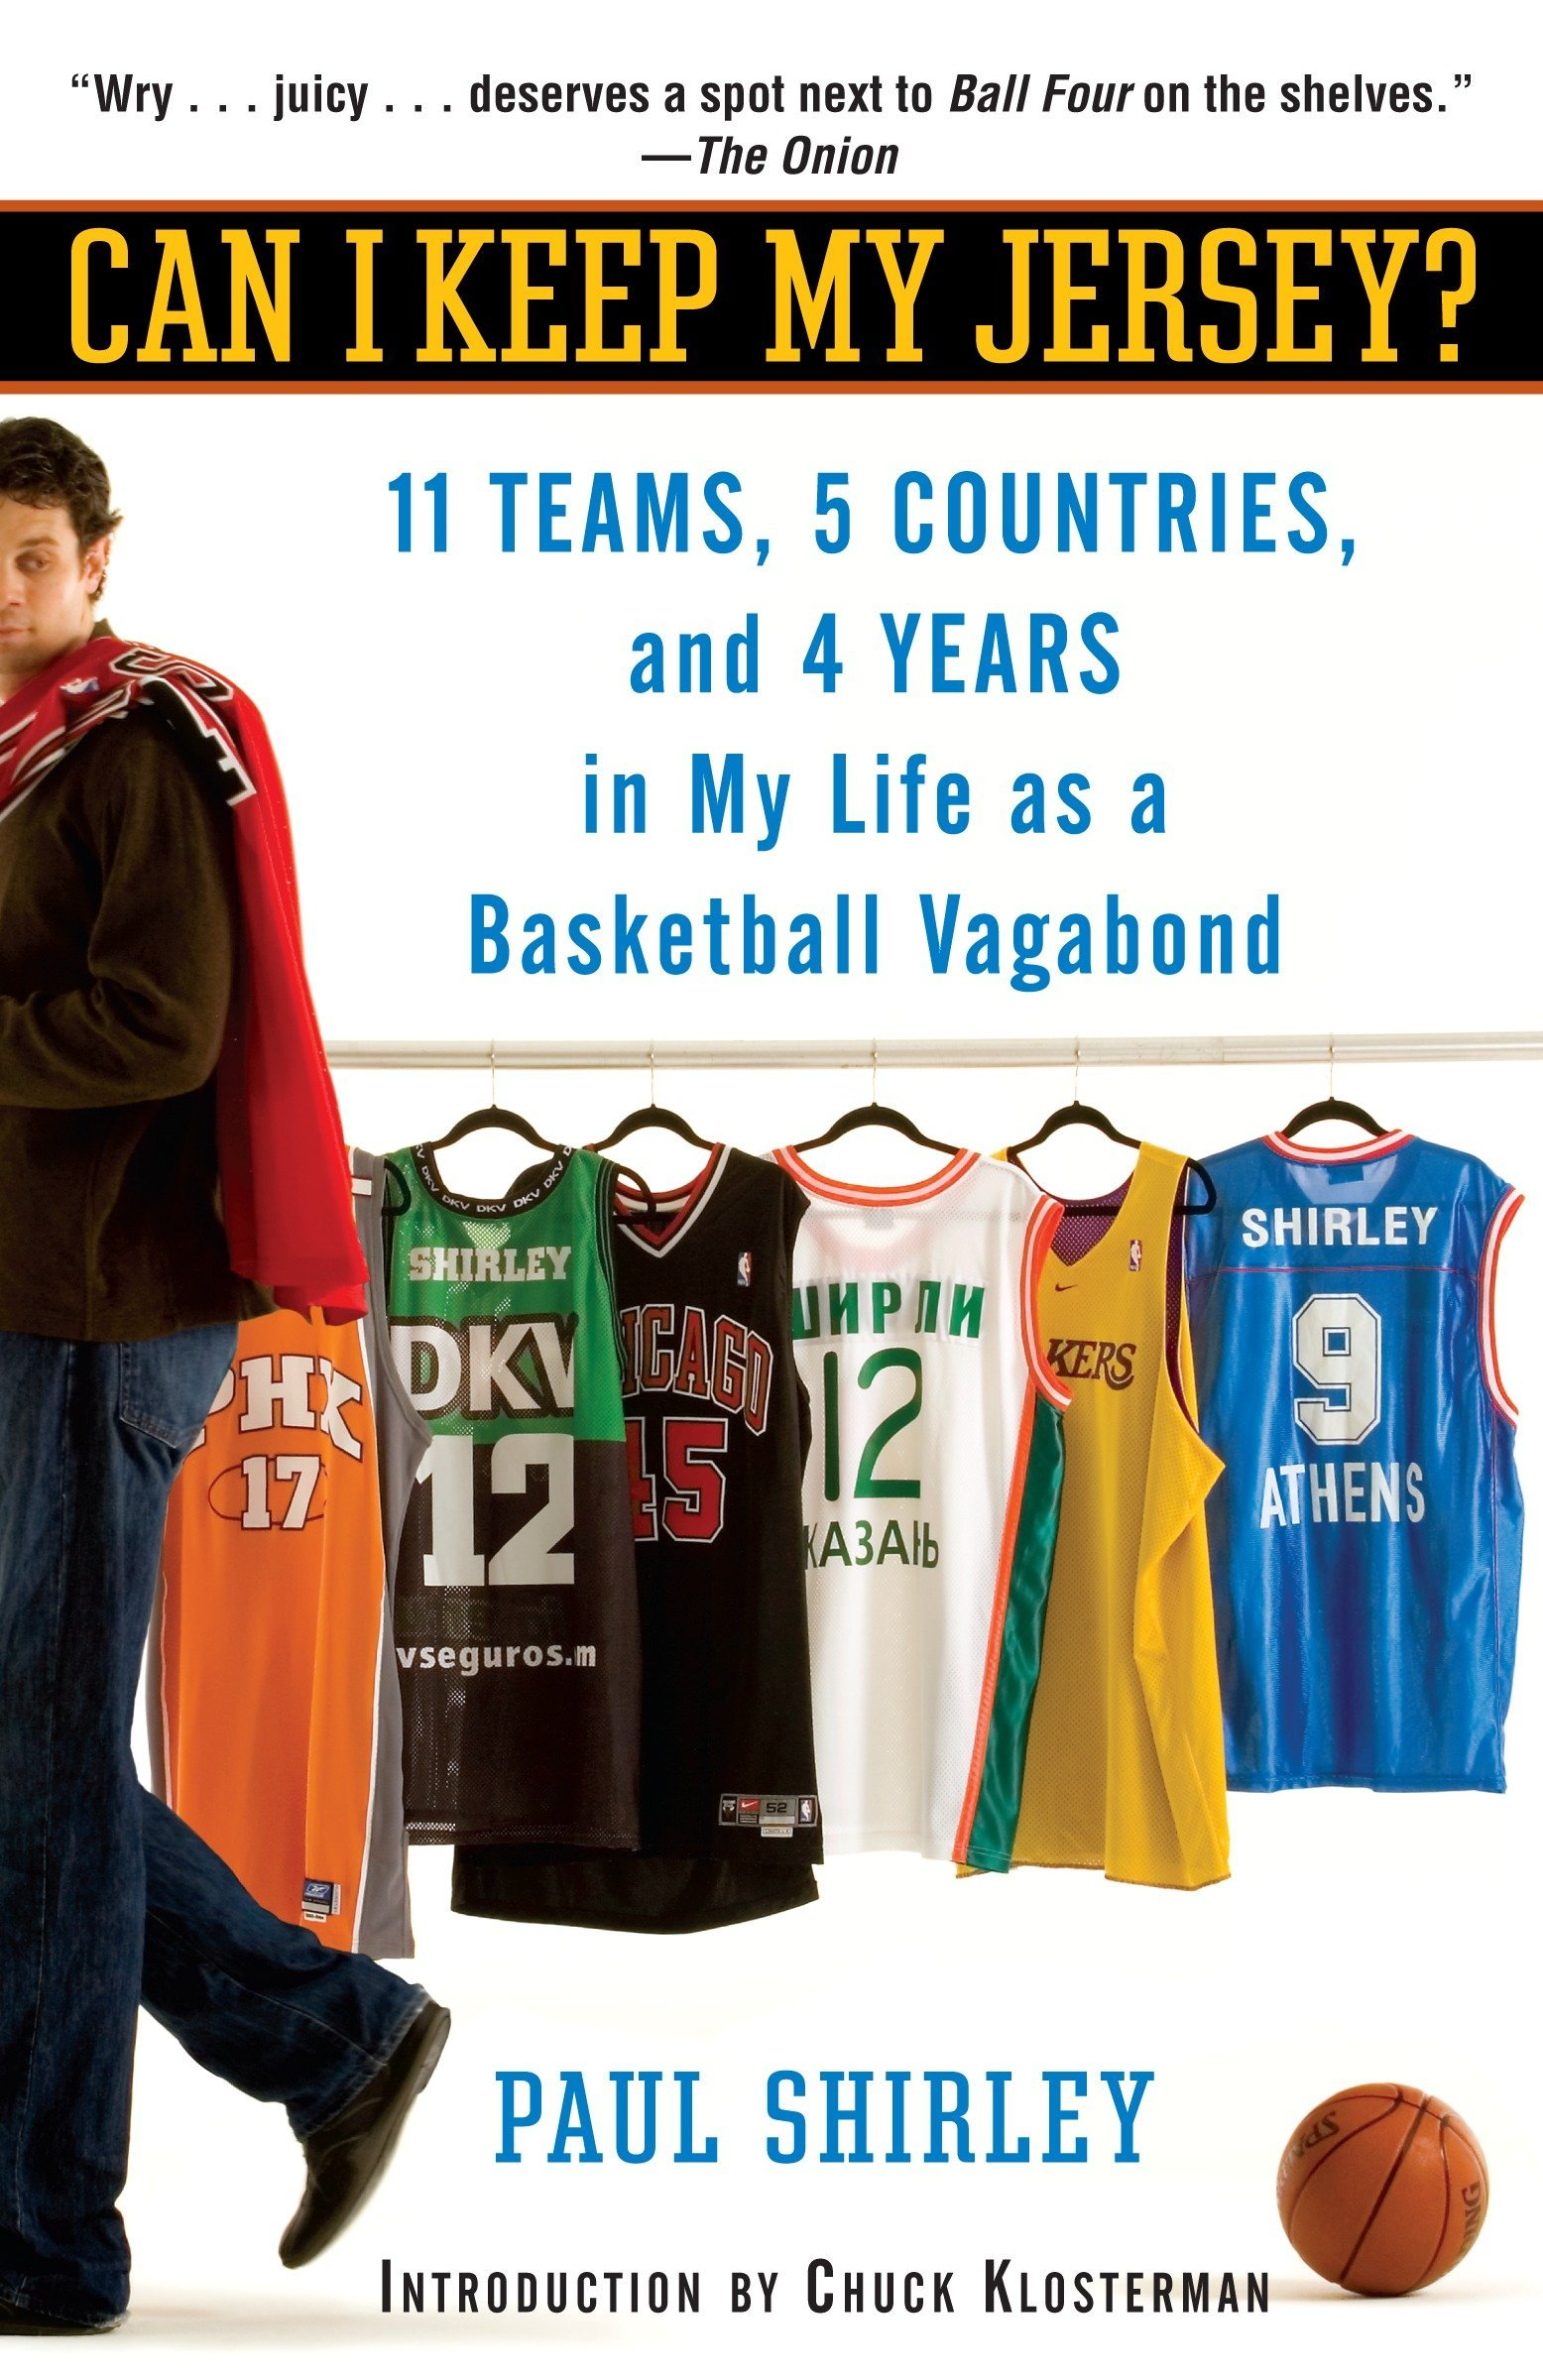 Image OfCan I Keep My Jersey?: 11 Teams, 5 Countries, And 4 Years In My Life As A Basketball Vagabond